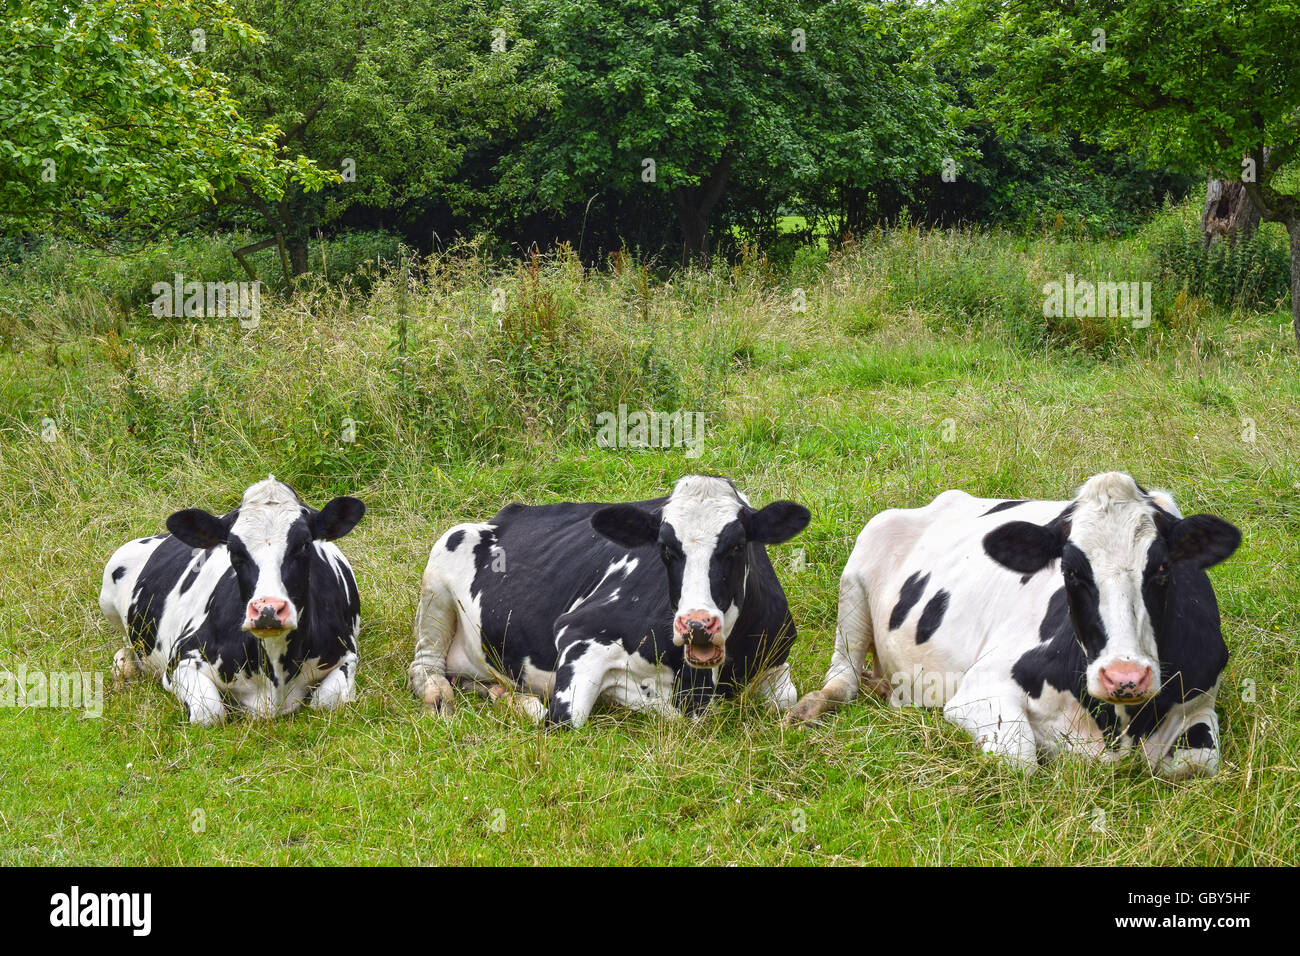 Three black-and-white dairy cows resting and ruminating on green pasture - Stock Image